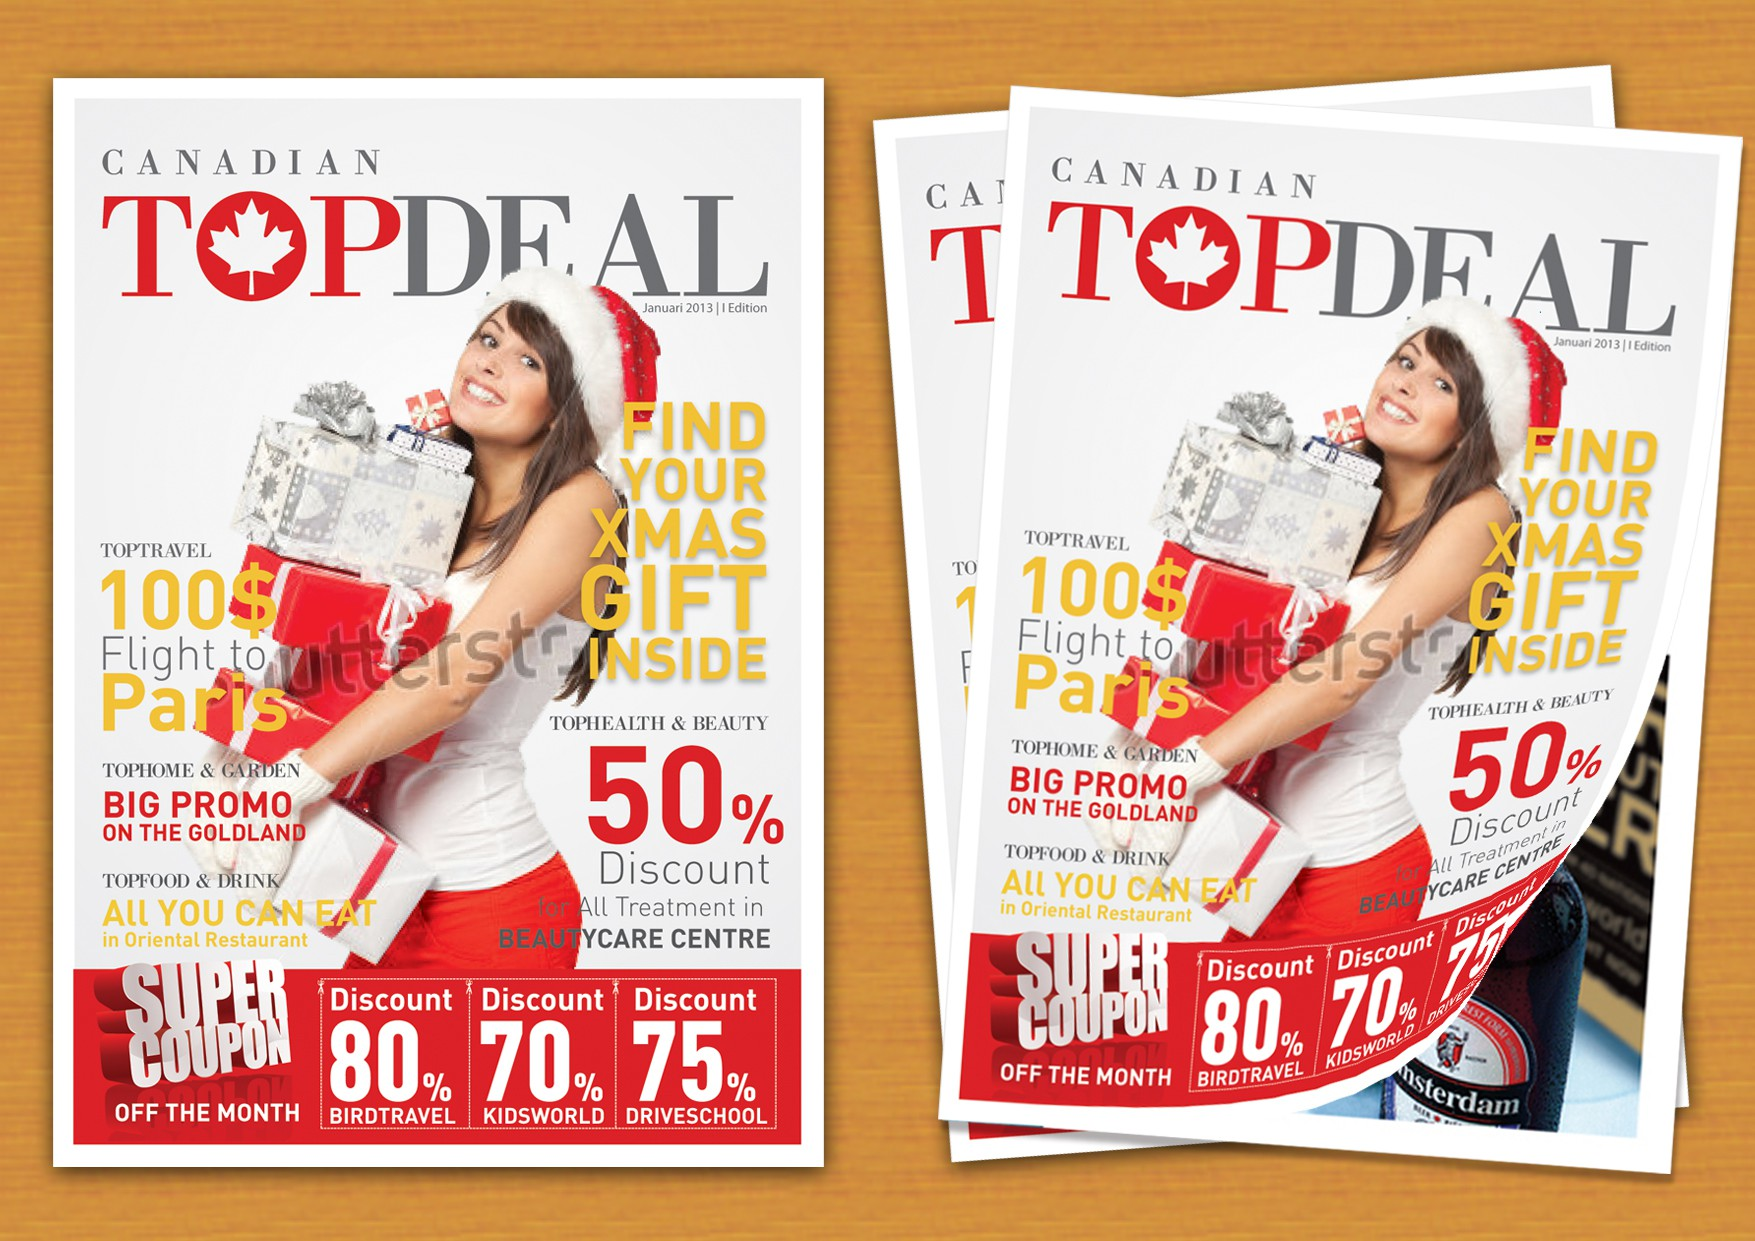 Create the next book or magazine cover for Canadian Top Deals